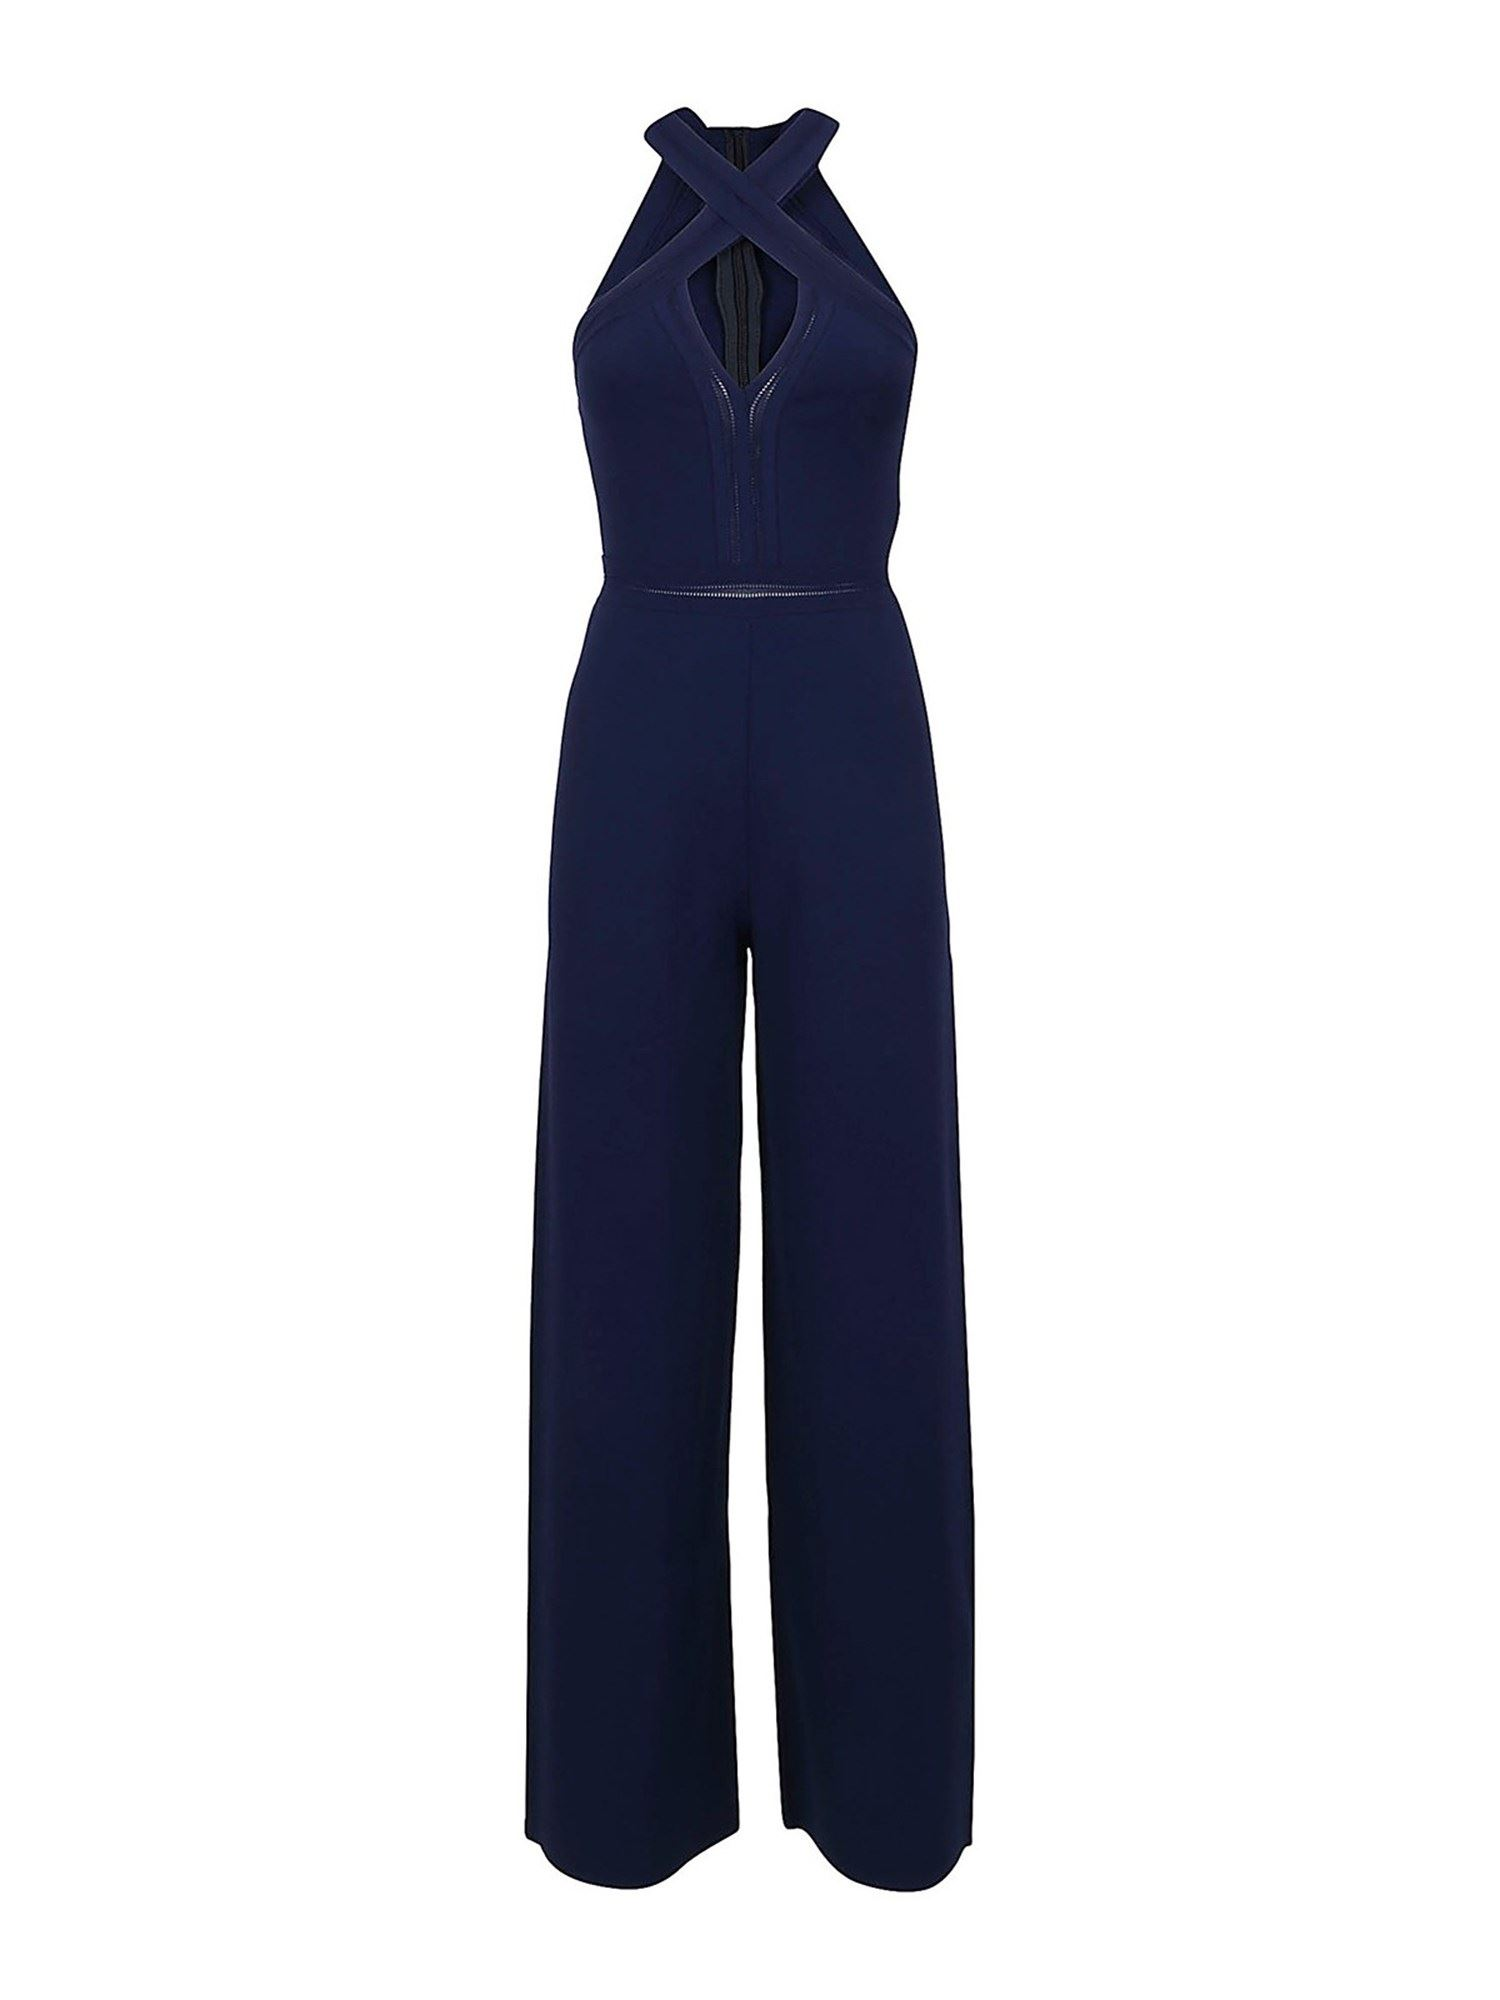 Stella Mccartney STELLA MCCARTNEY HALTER NECK JUMPSUIT IN BLUE